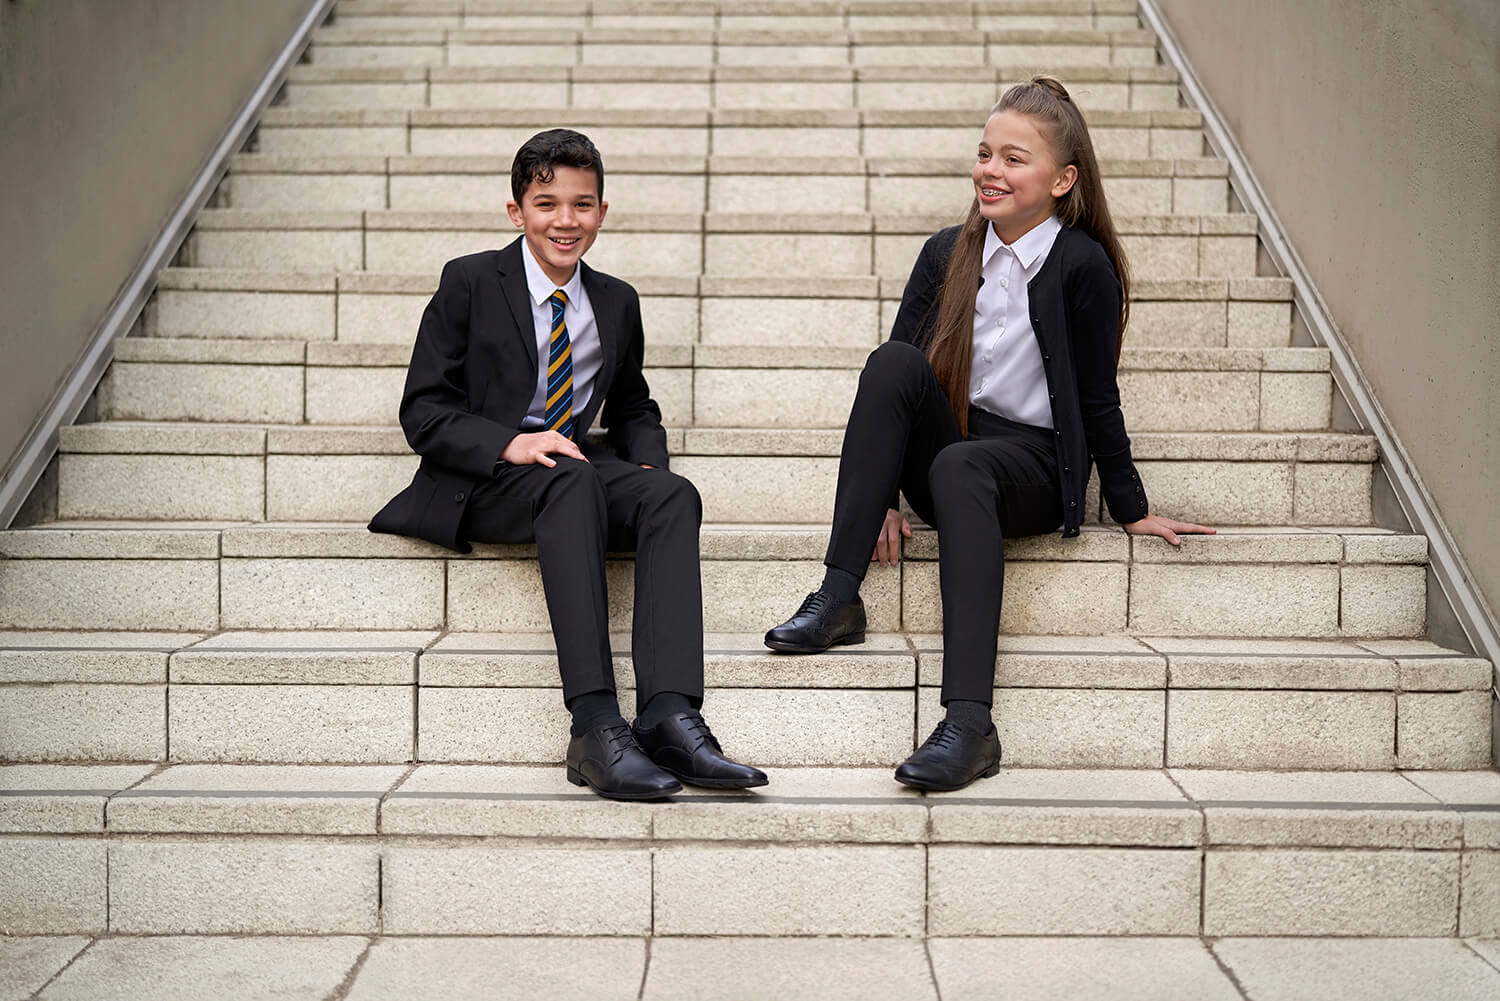 School Kids Sitting on Steps